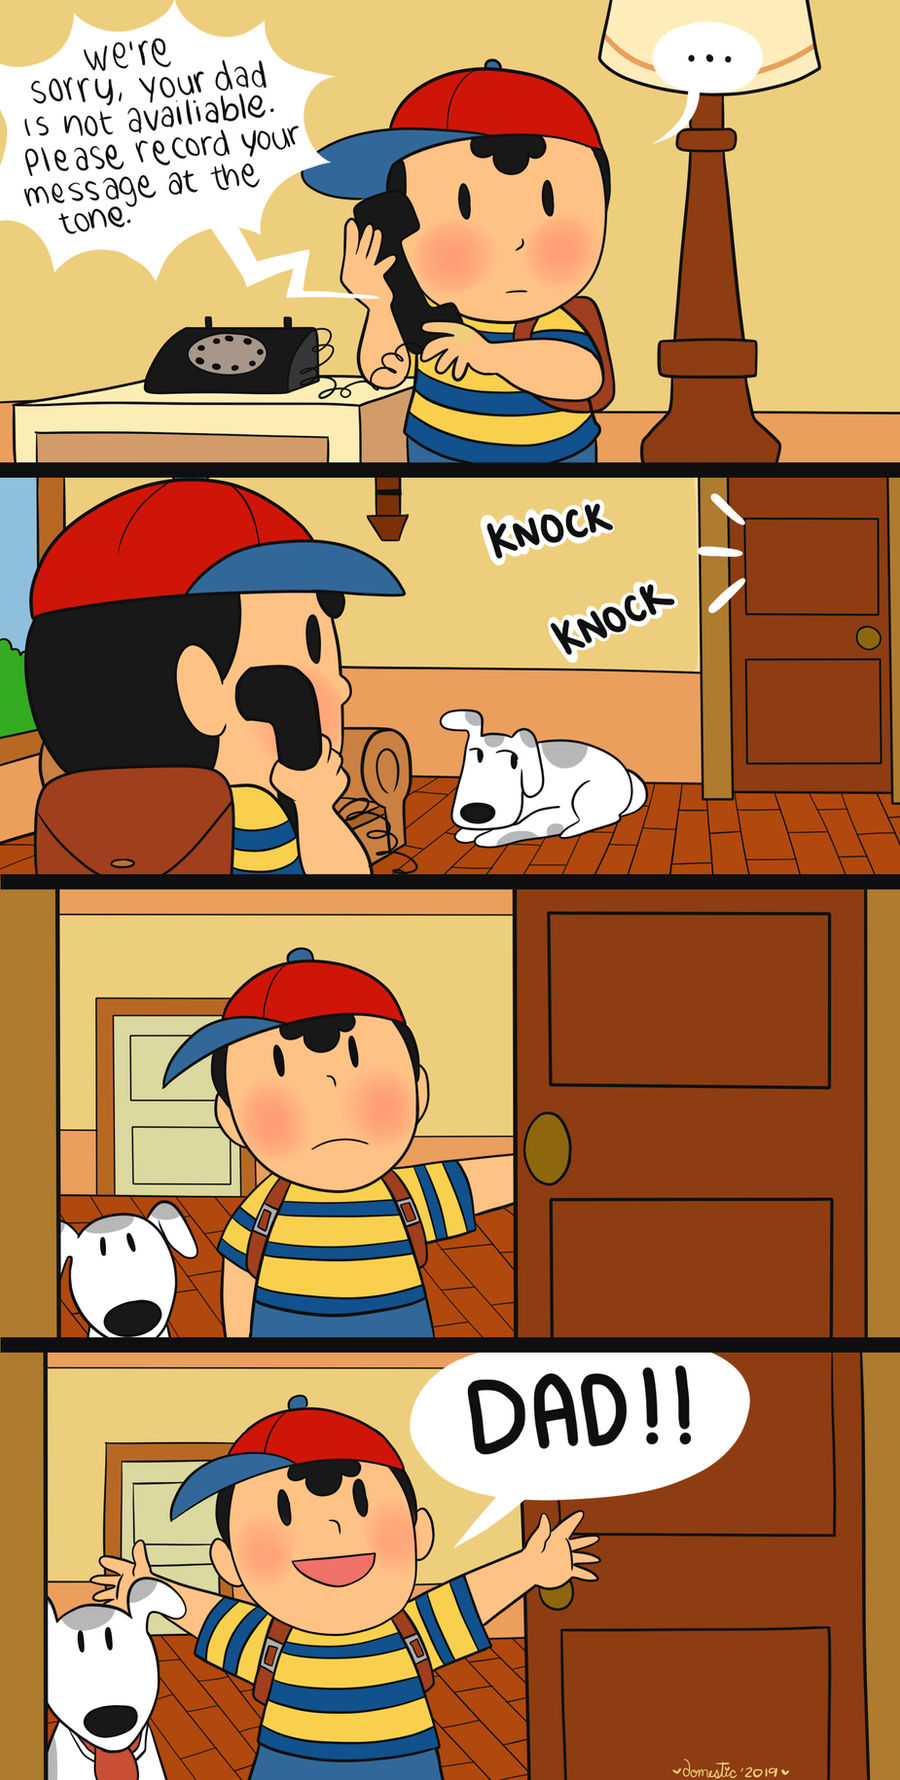 Earthbound Happy Father's day by Domestic-hedgehog on DeviantArt